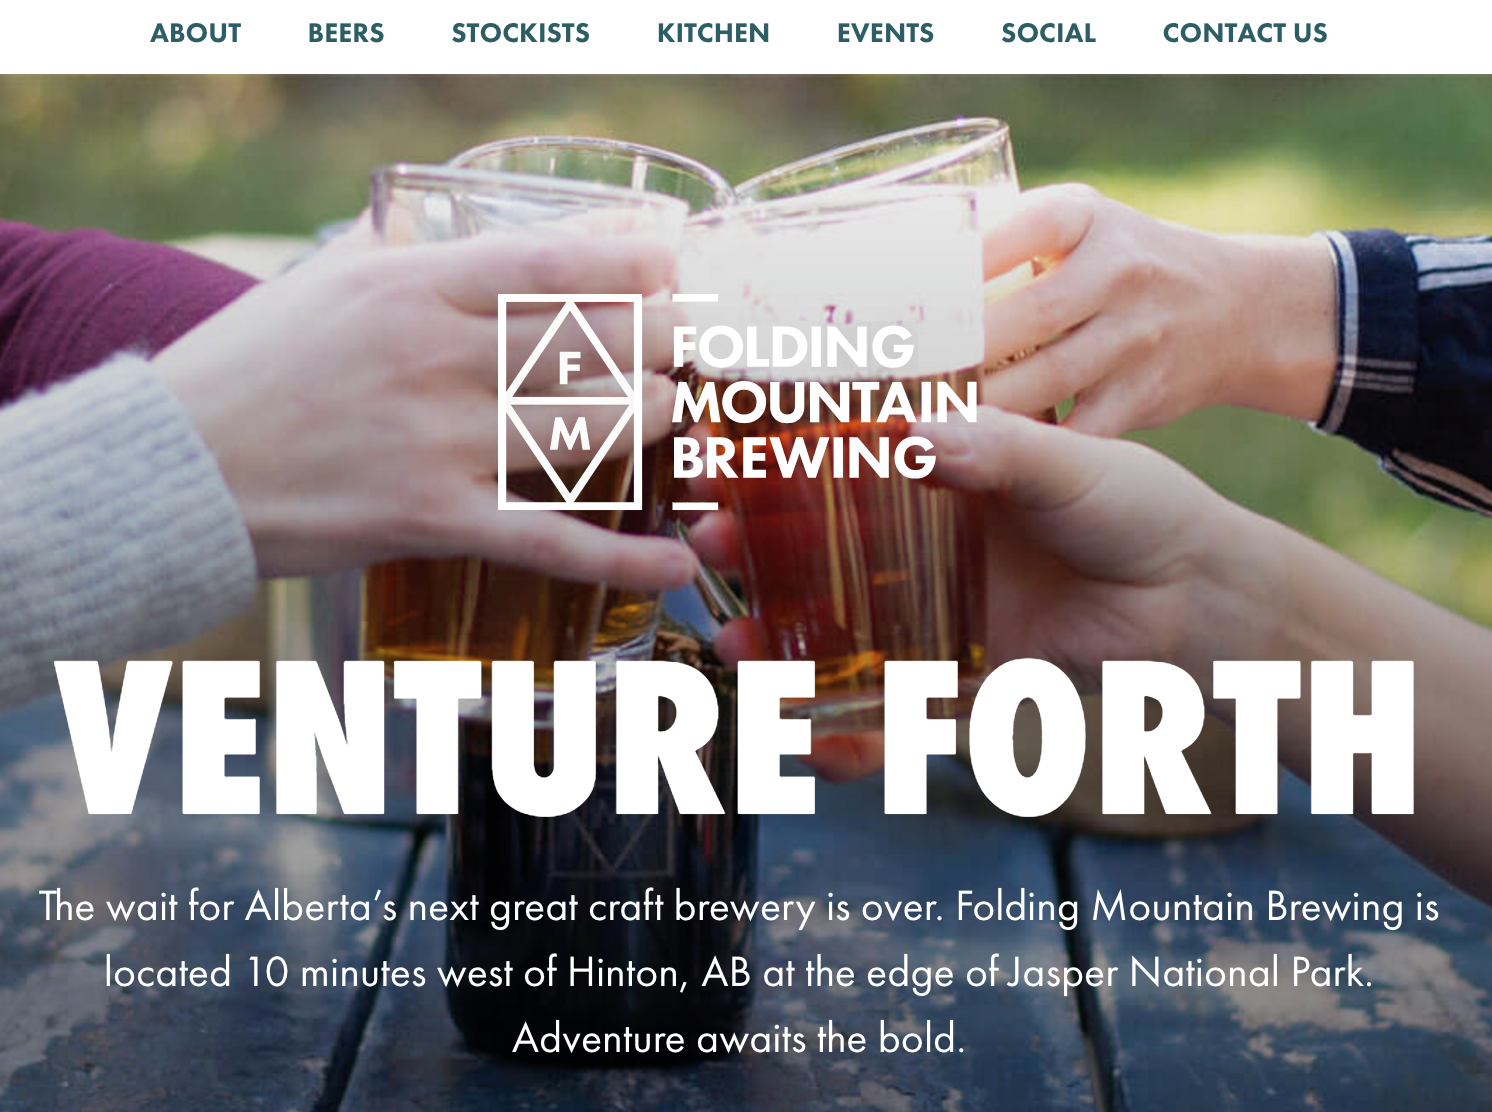 The wait for Alberta's next great craft brewery is over. Folding Mountain Brewing is located 10 minutes west of Hinton, AB at the edge of Jasper National Park. Adventure awaits the bold.